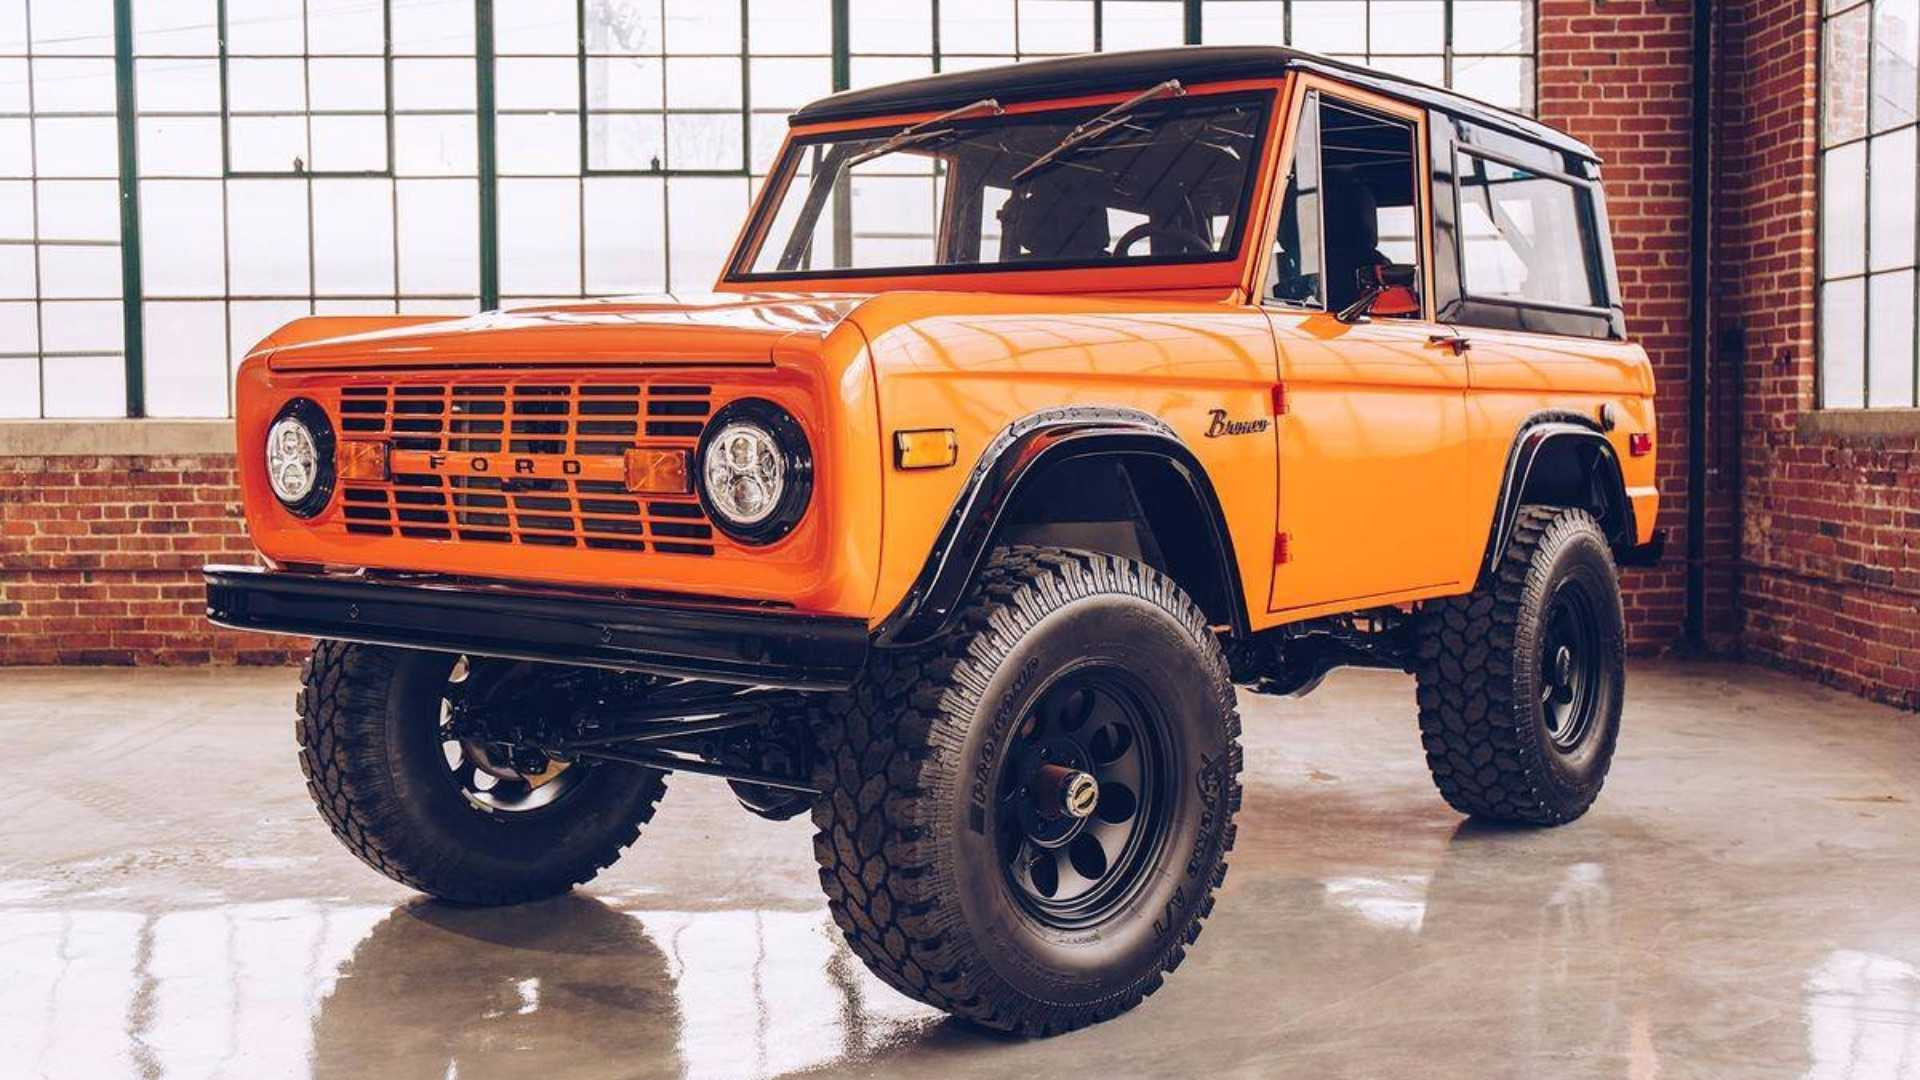 com%2Fimages%2Fmgl%2Fgex4w%2Fs1%2Fthis-1971-bronco-makes-you-long-for-the-early-years-of-the-suv.jpg